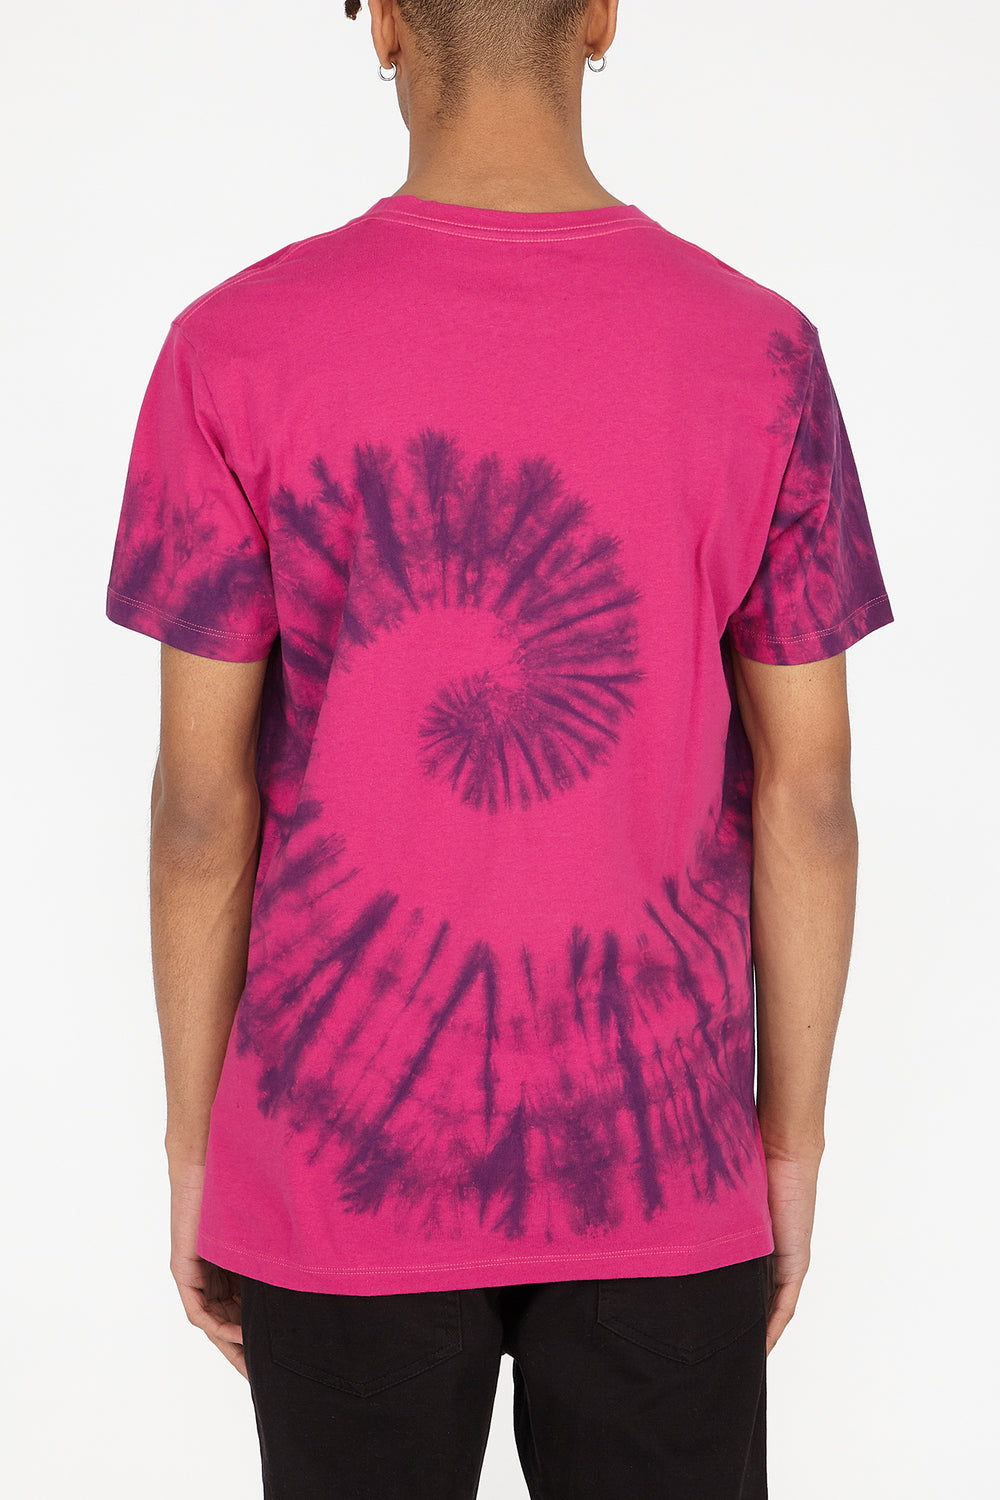 T-Shirt Tie-Dye Young & Reckless Homme Violet